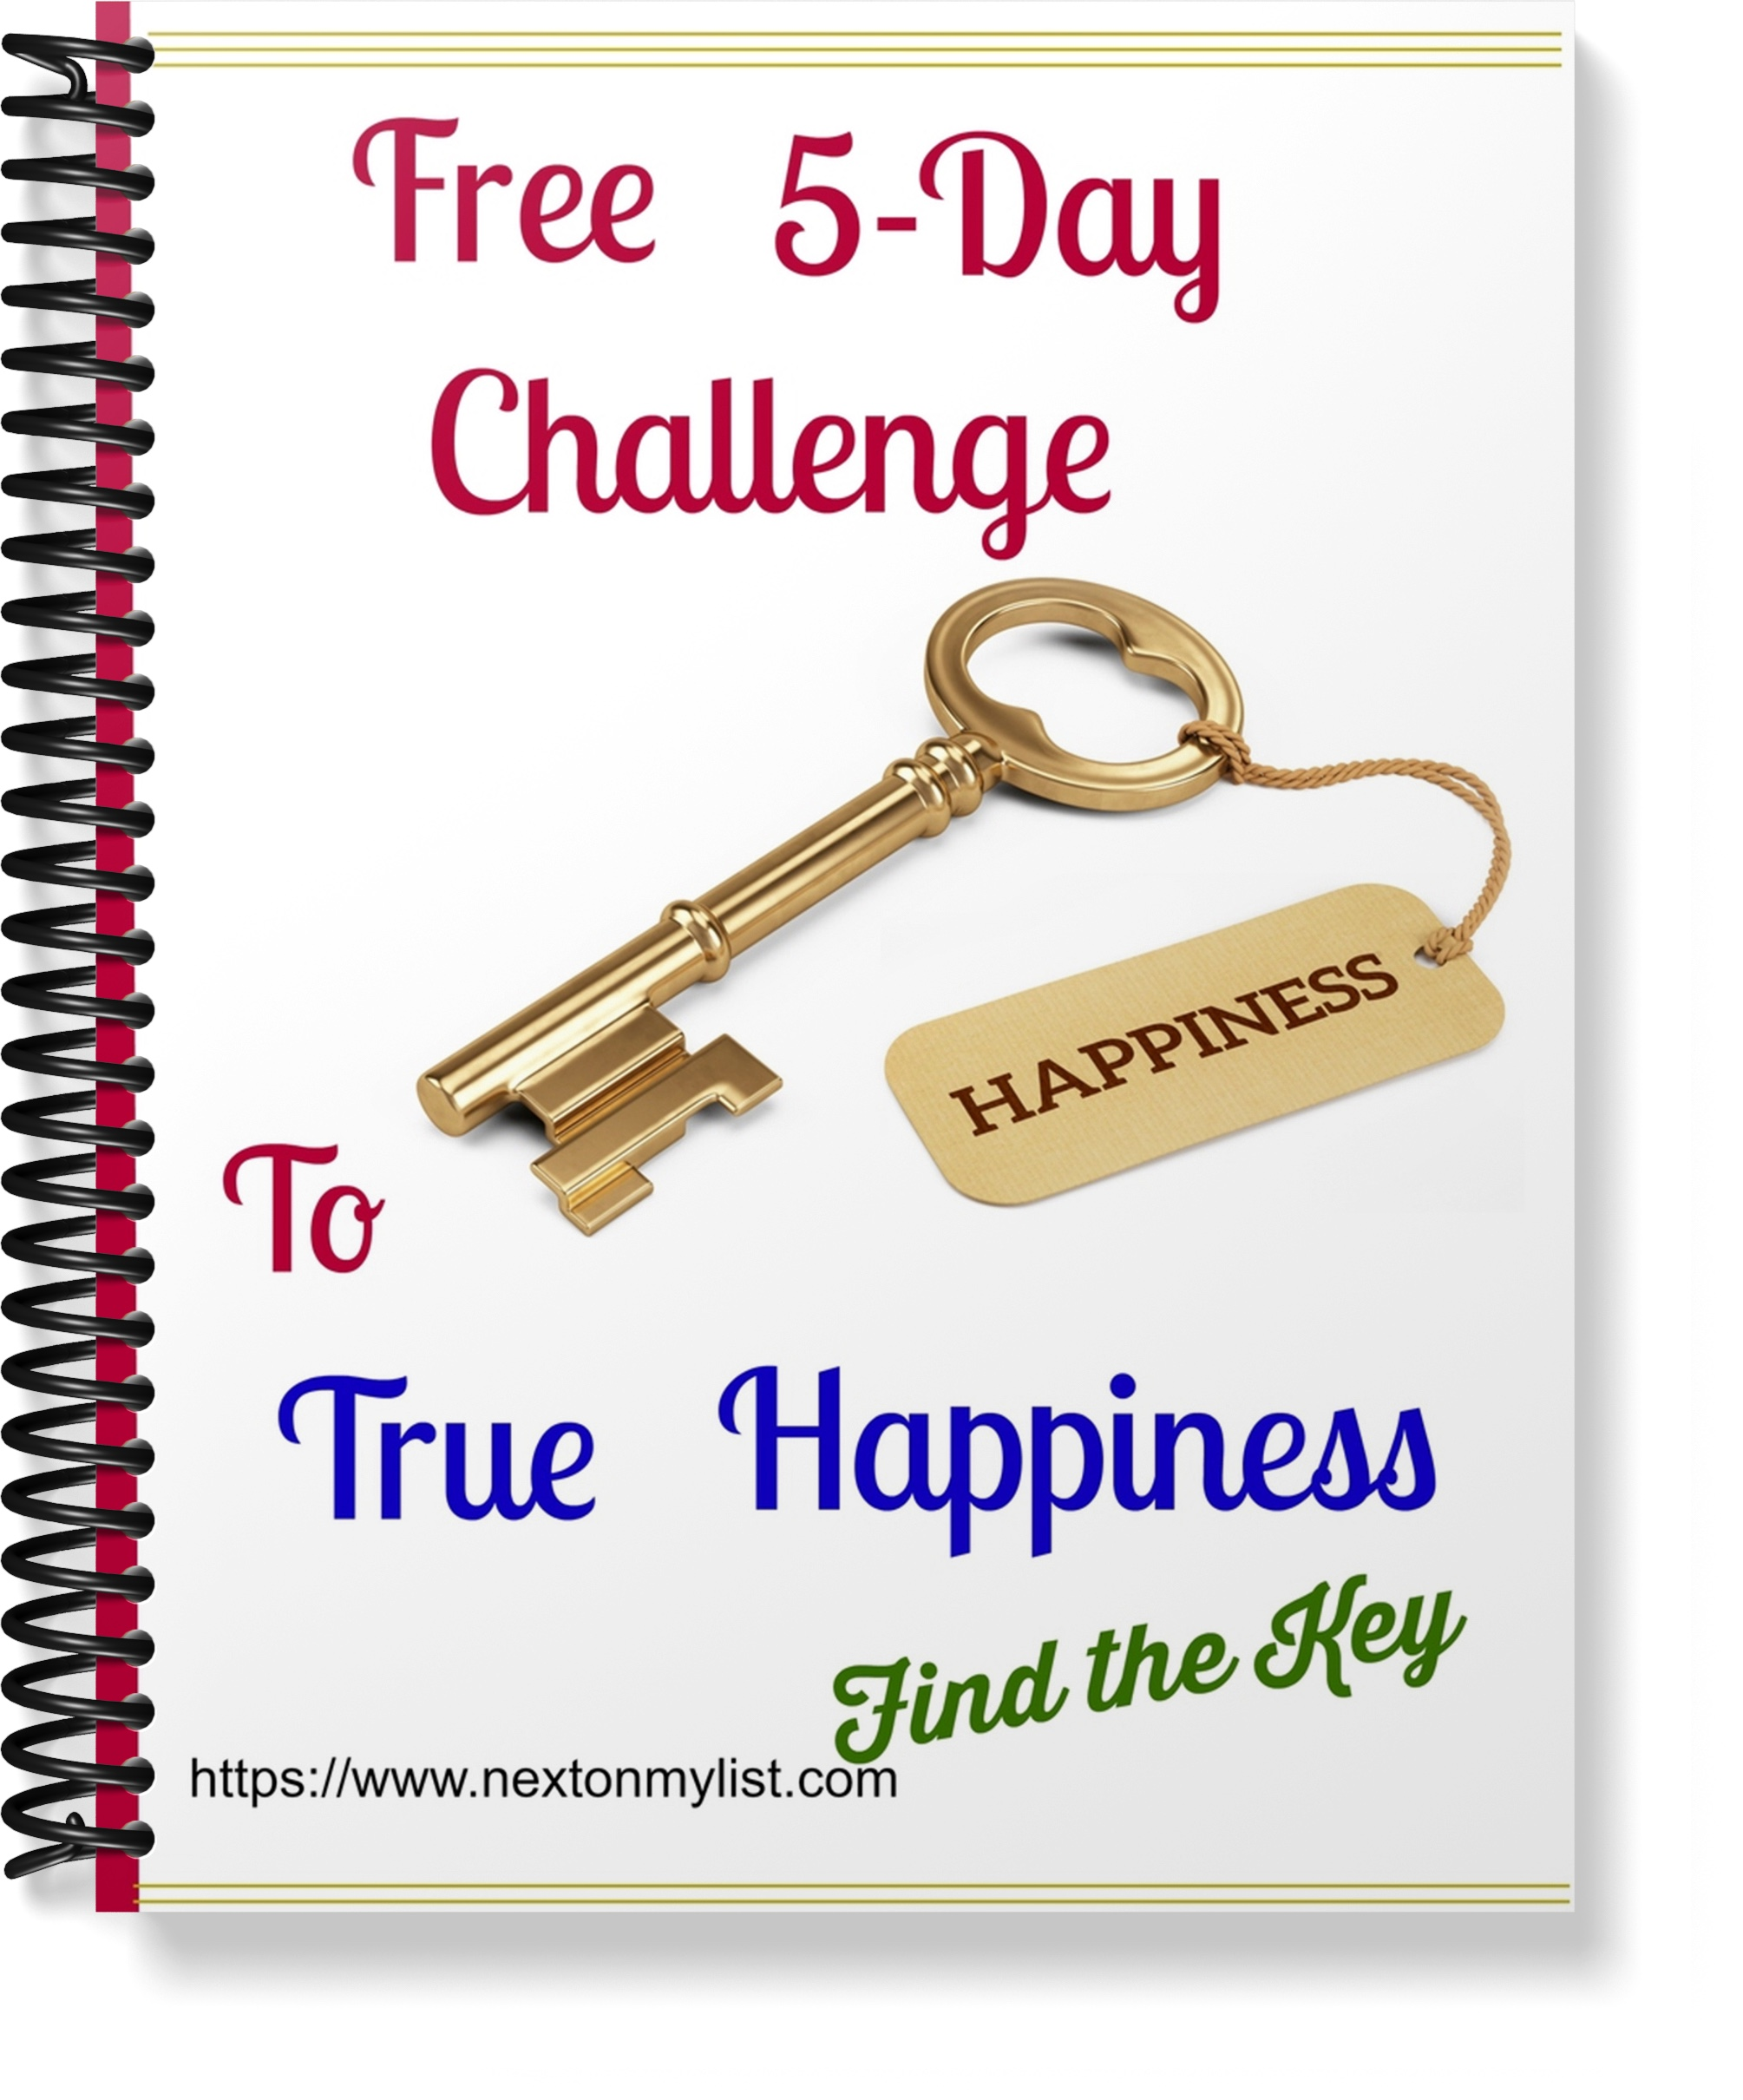 Happiness challenge key